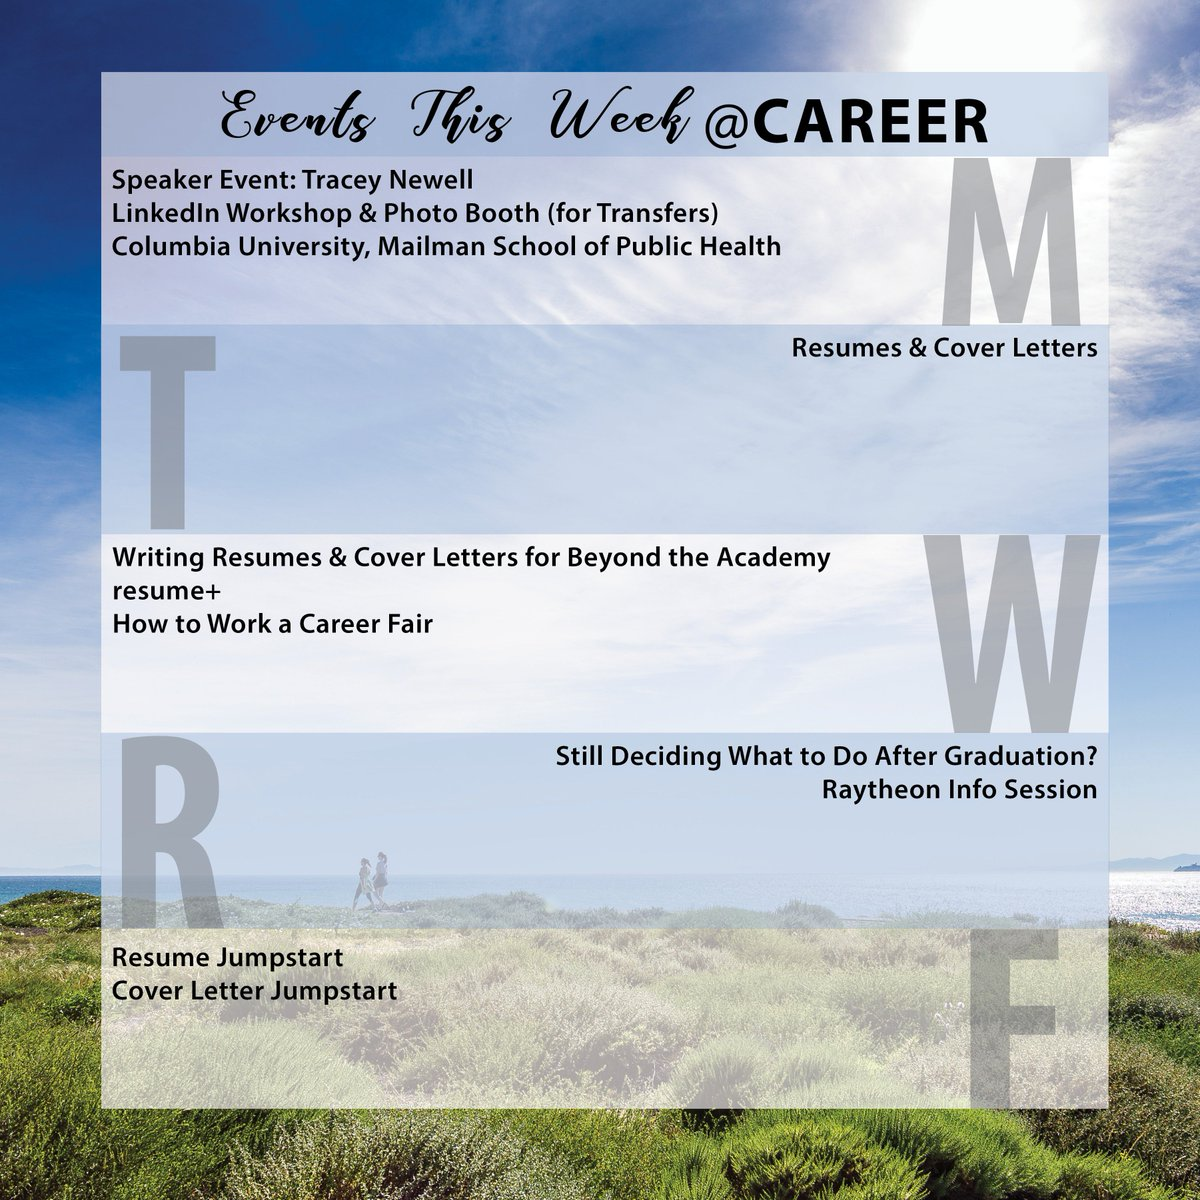 Ucsb Calendar.Ucsb Career Services On Twitter Welcome To Week 2 Here At Career